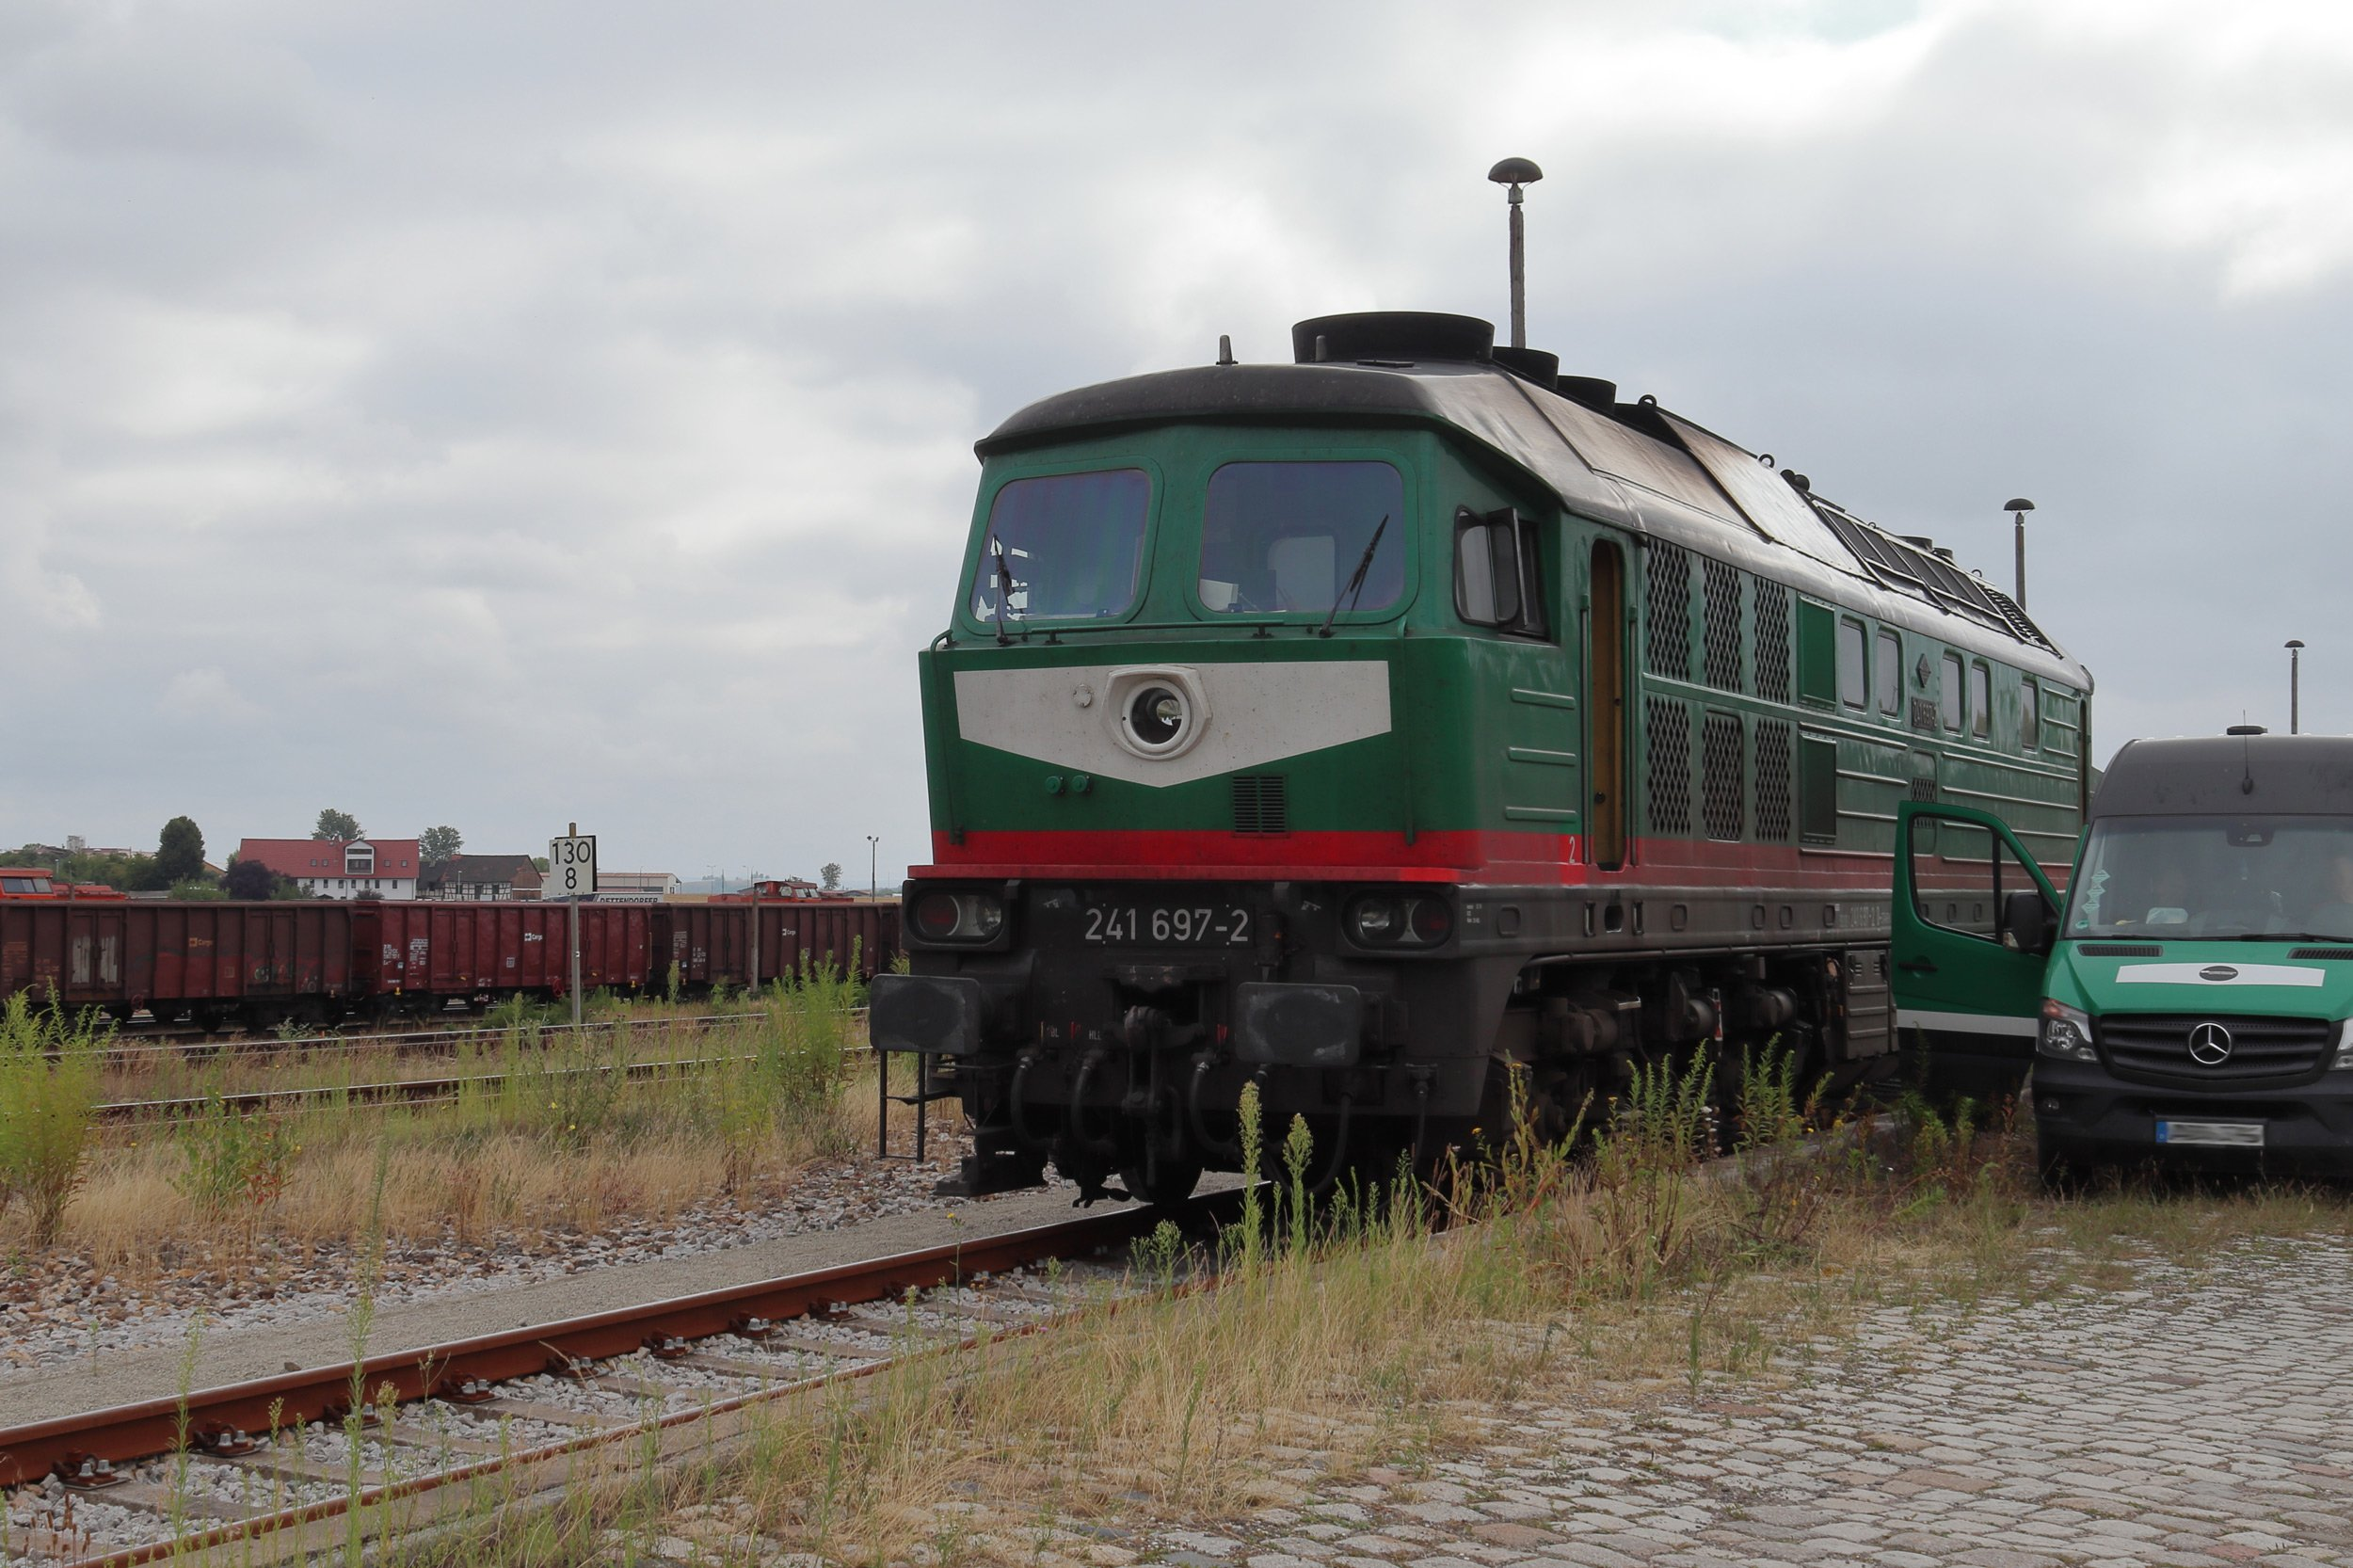 Starkenberger 241 697 in Könitz am 17.7.19